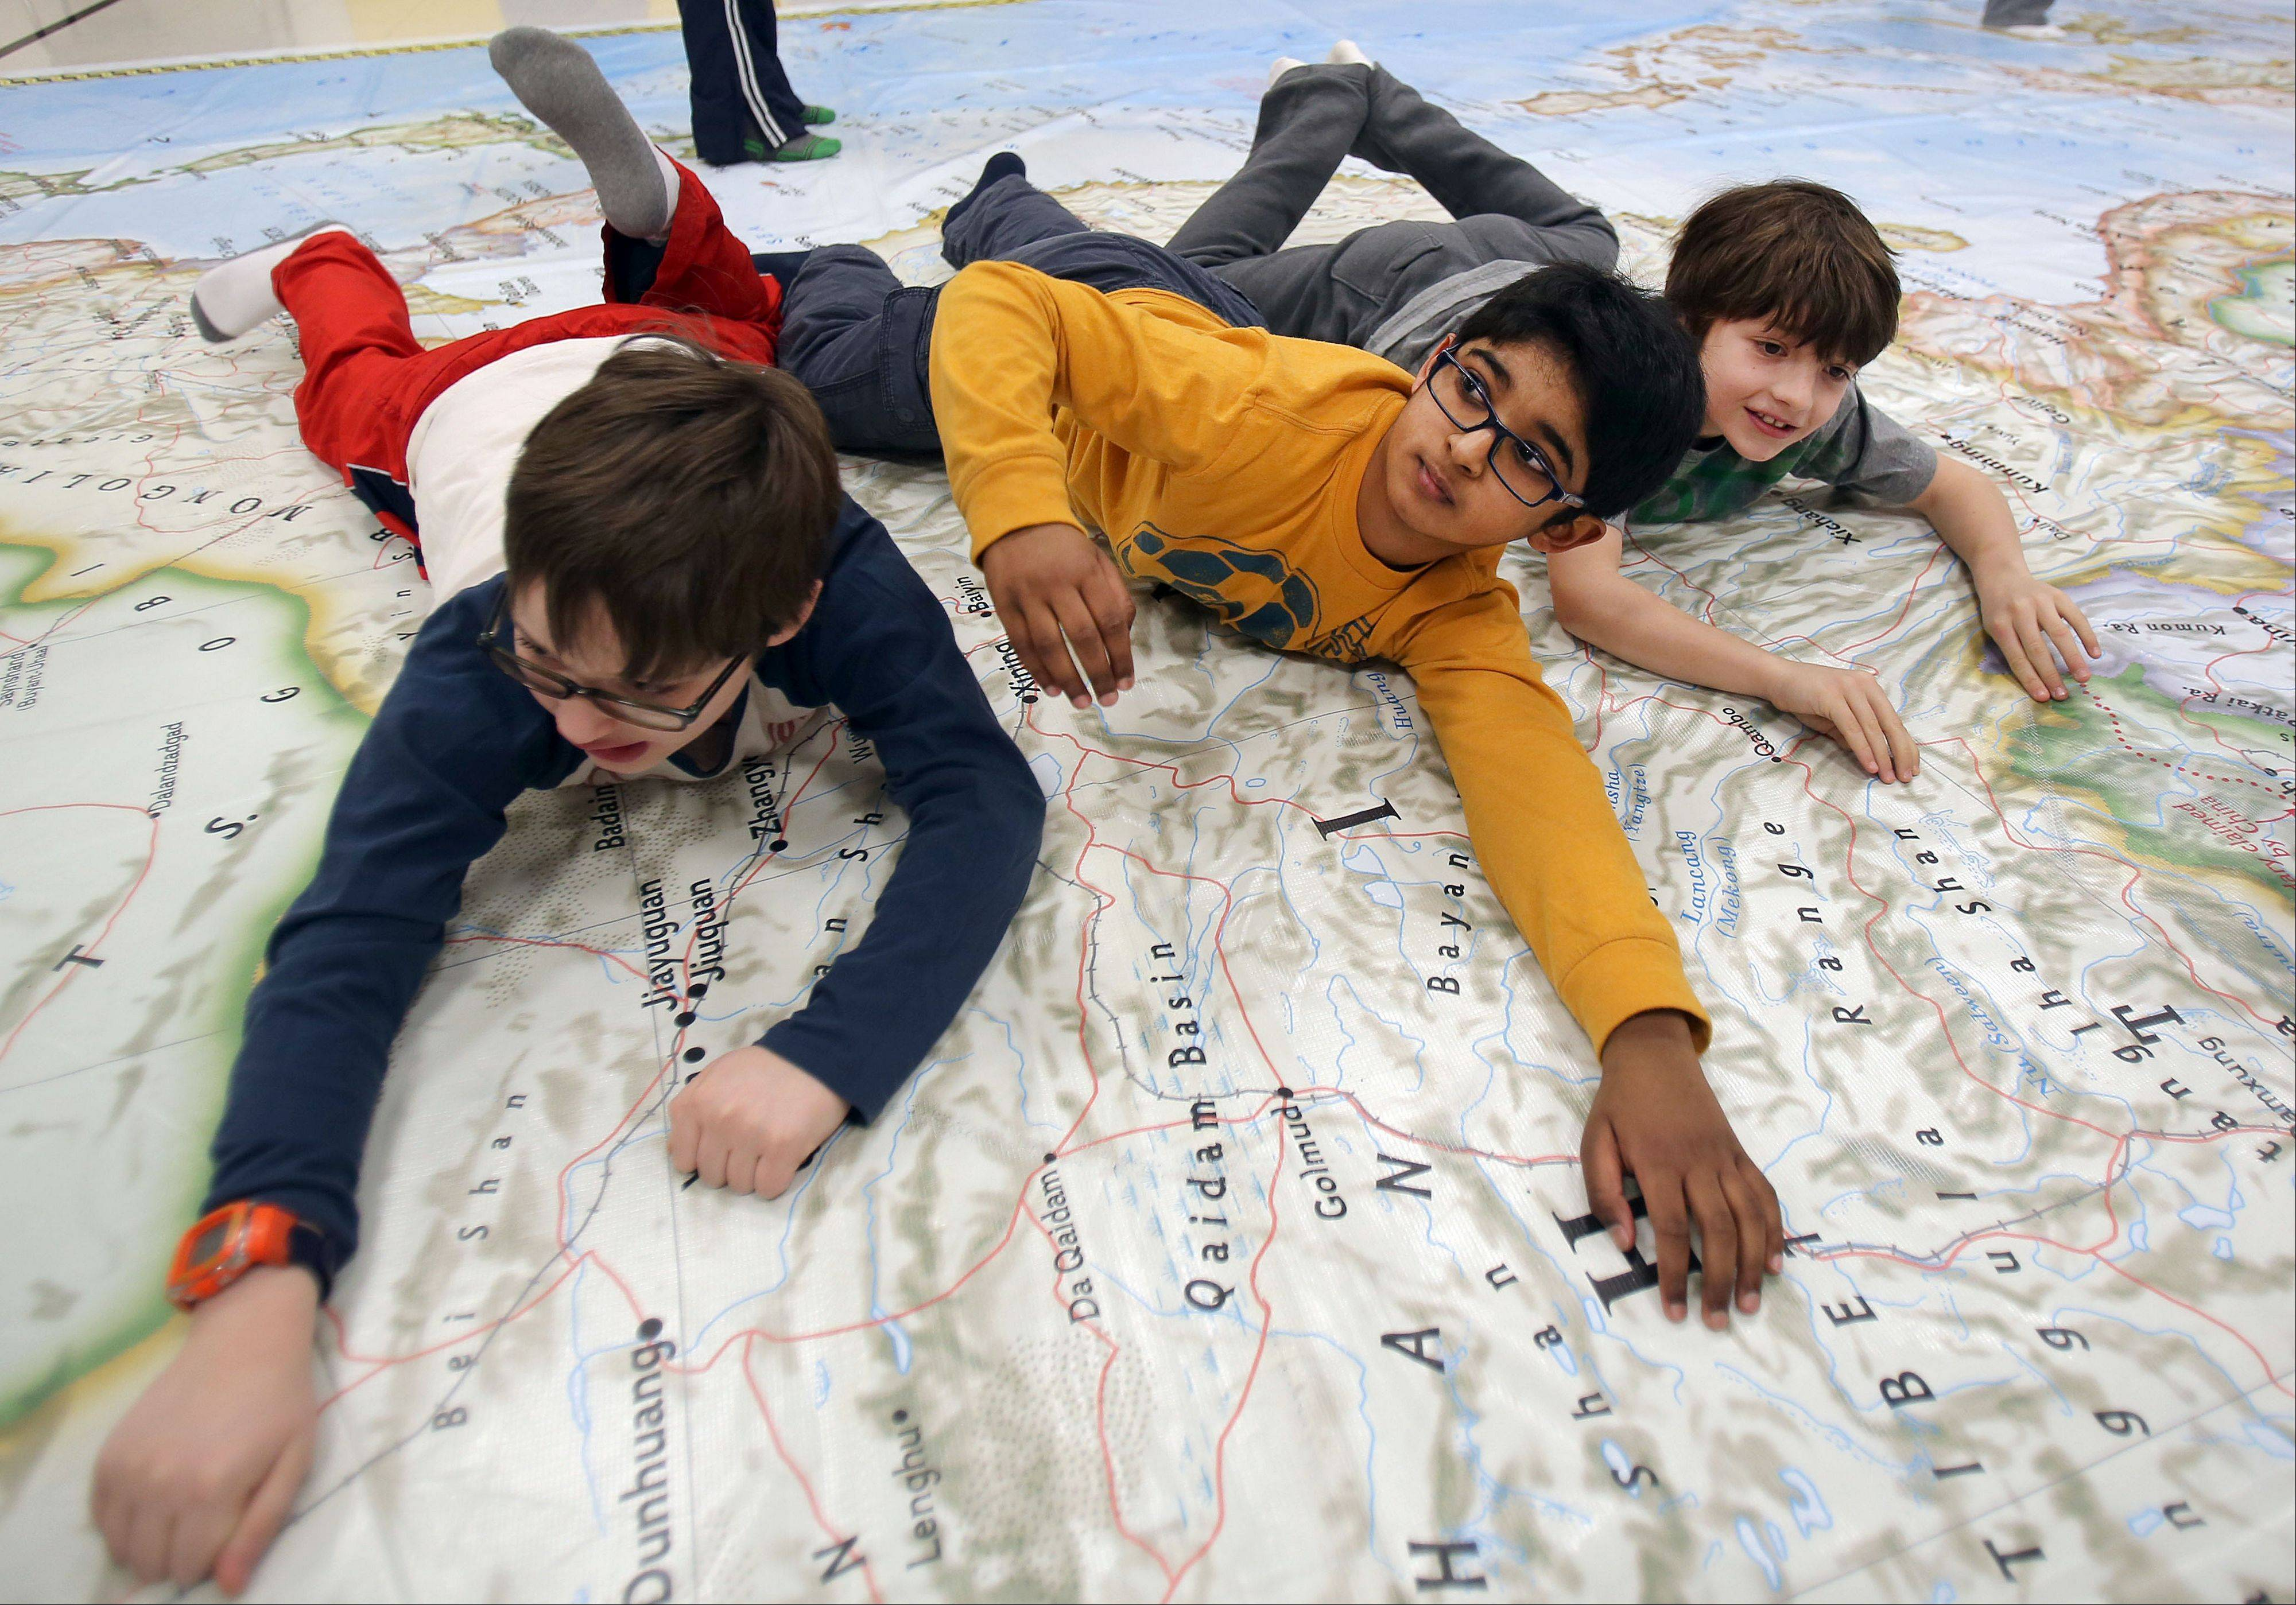 Third-graders Mario Babbo, left, Narayan Manthena and Max Poretto pose for a picture while exploring a giant map of Asia at Half Day School in Lincolnshire Friday. It is part of National Geographic's Giant Traveling Maps program and will remain at the school until Jan. 17.